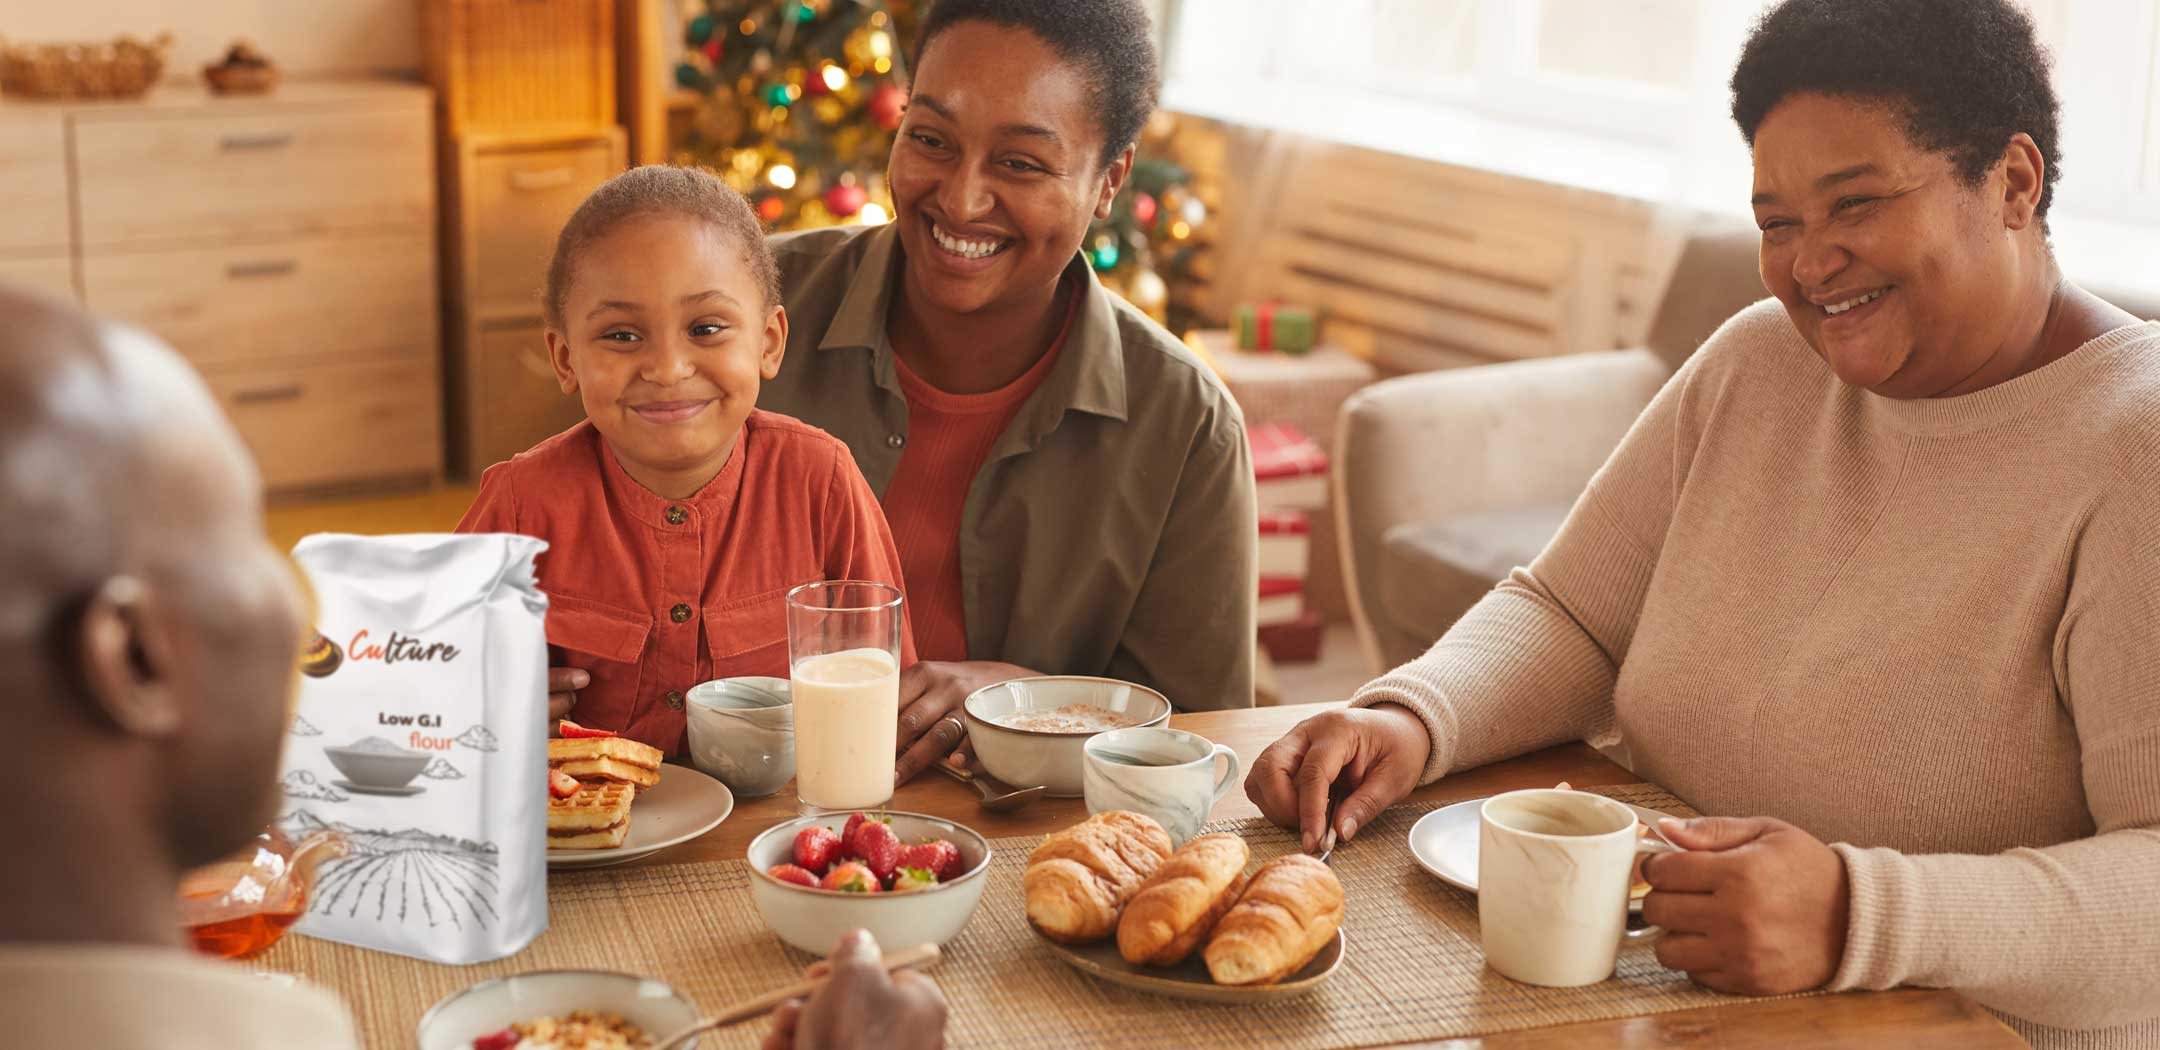 happy-family-enjoying-breakfast-with-a-flour-that-is-good-for-diabetics-and-has-low-GI-glycemic-index